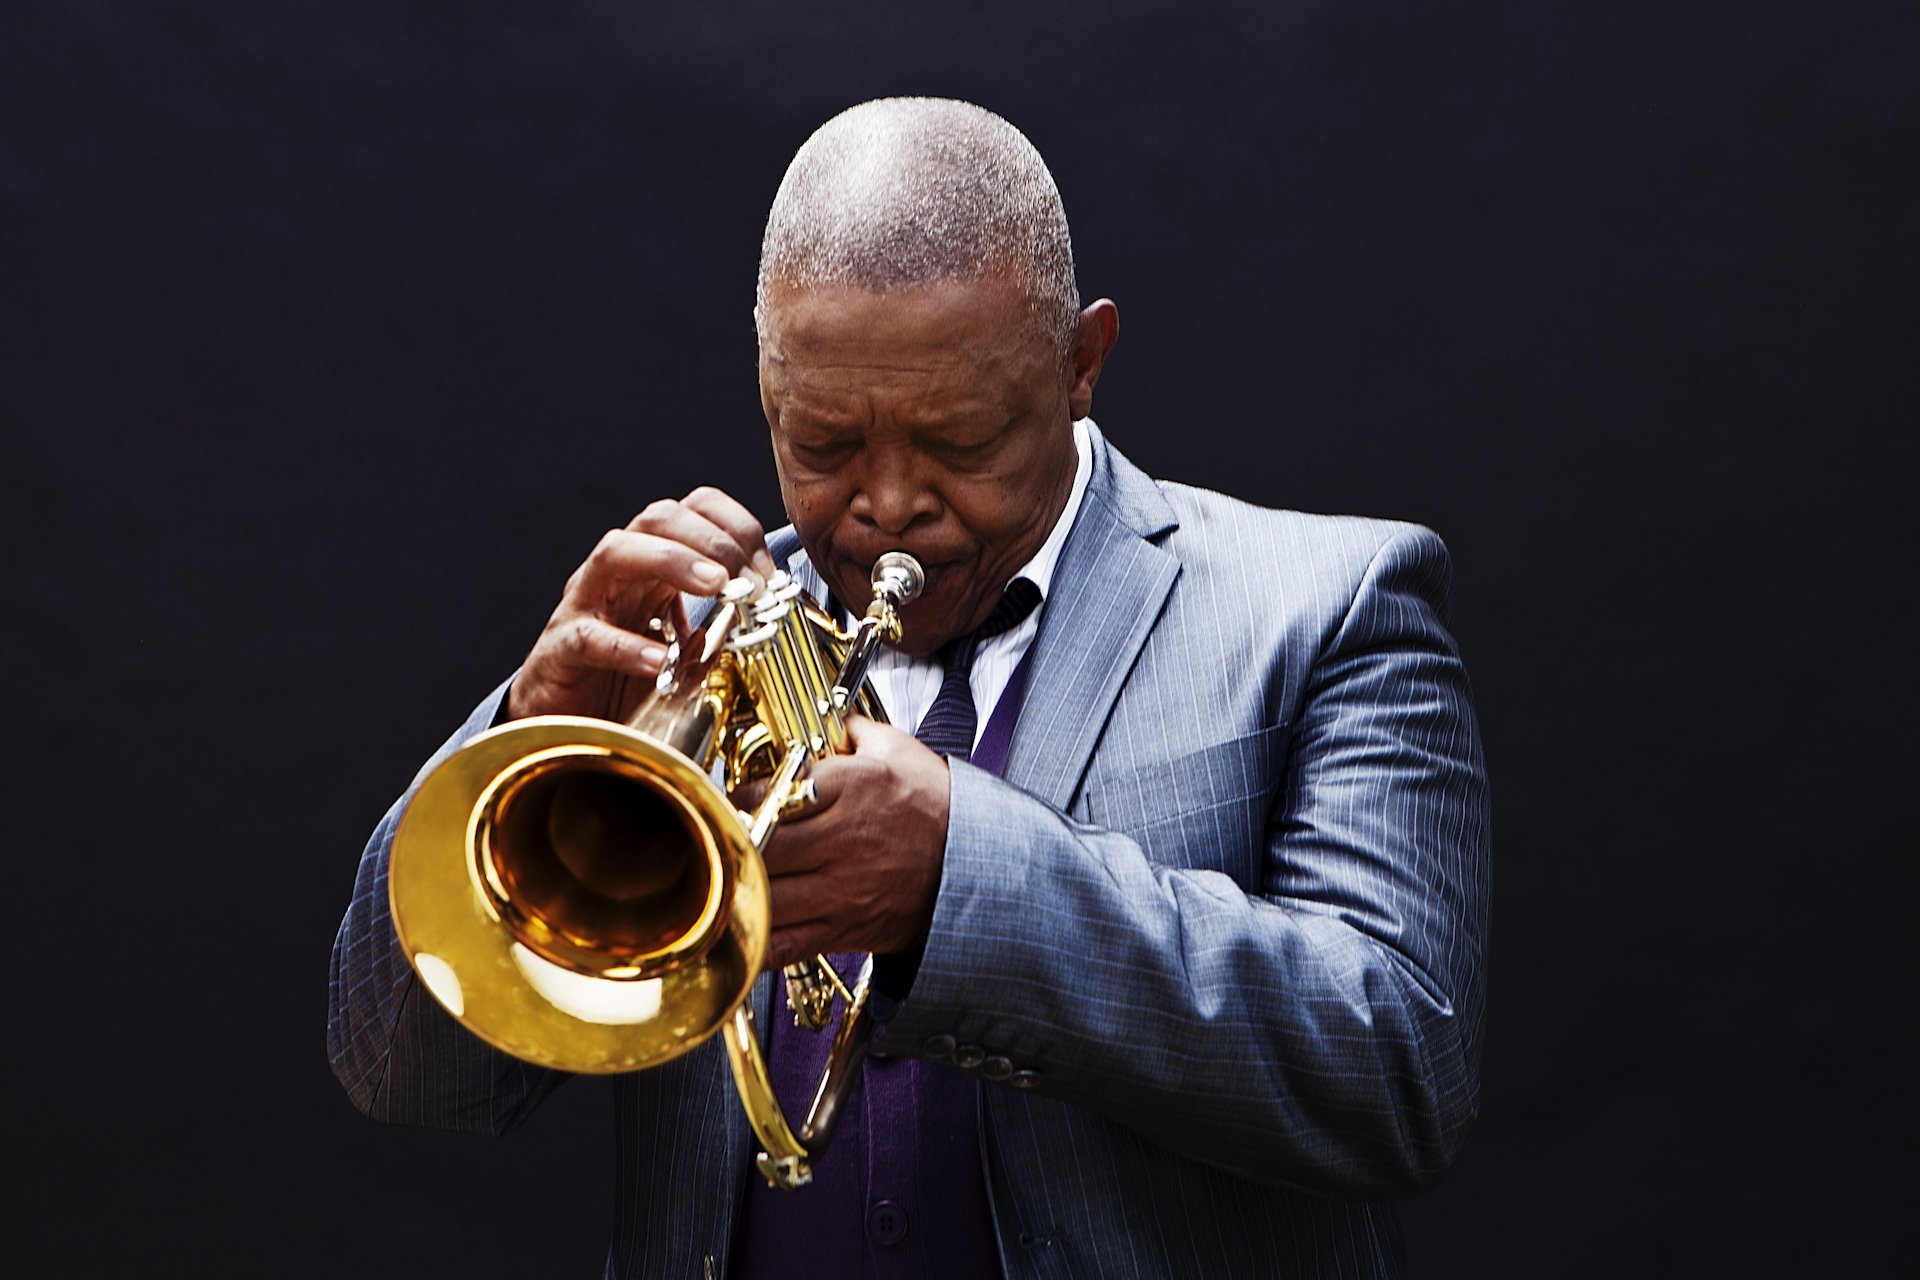 abangoma hugh masekela biography